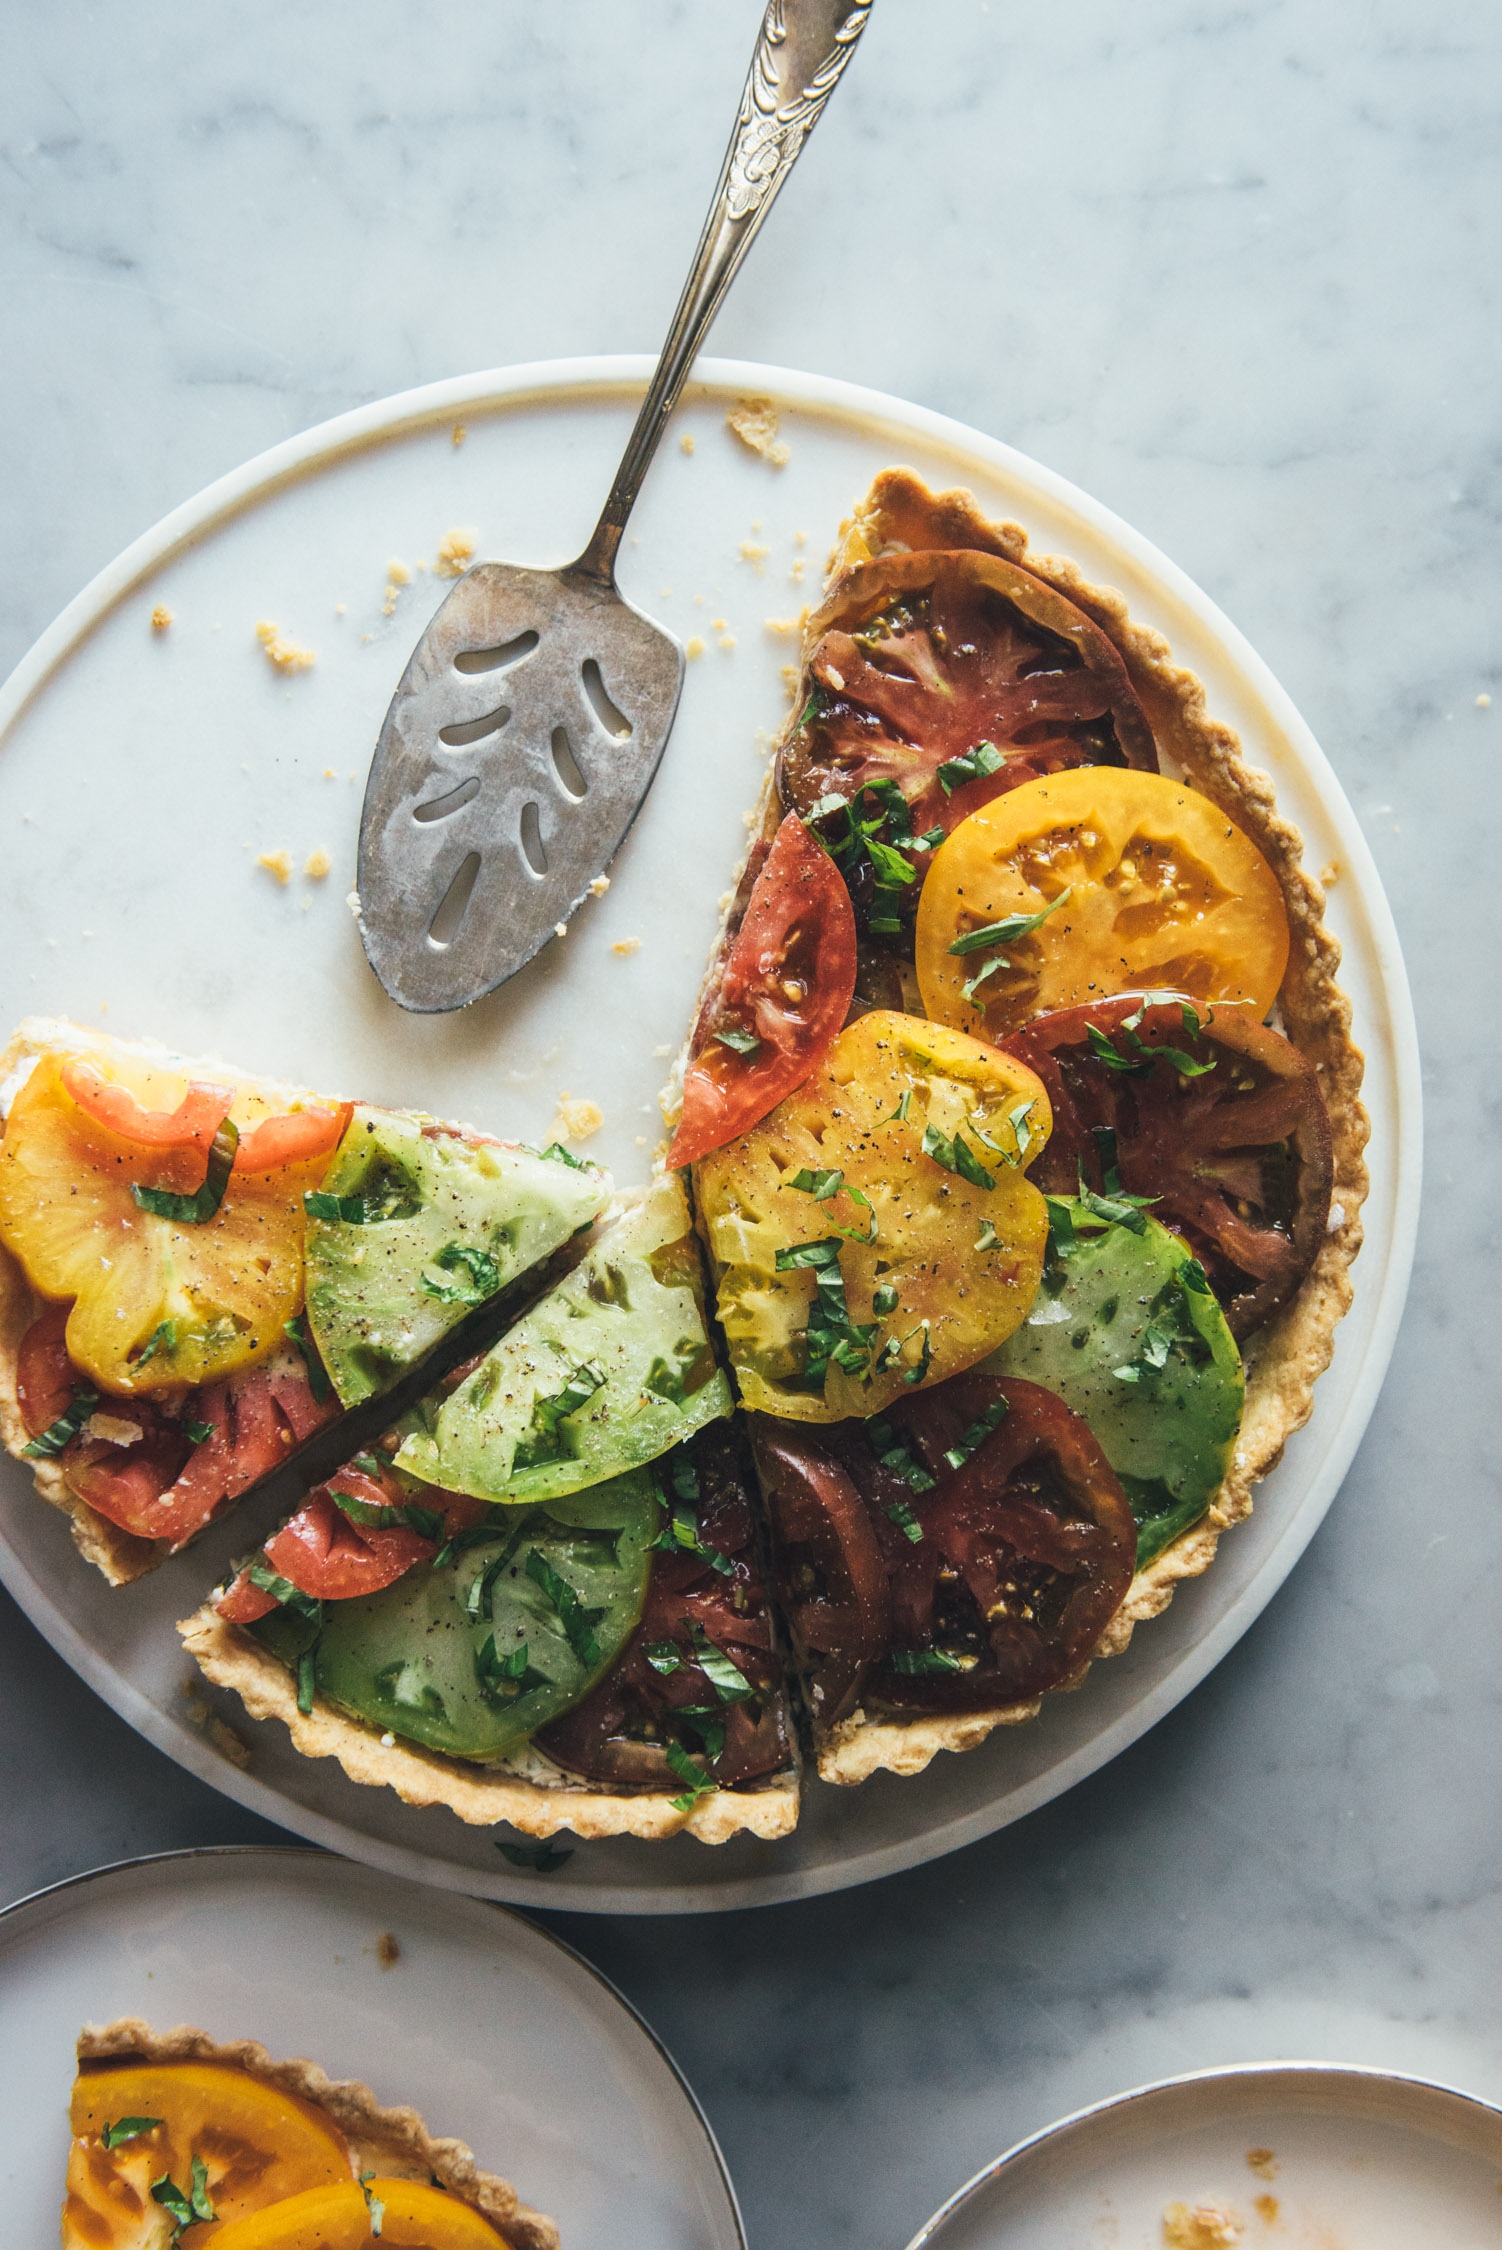 Tomato Tart with a Scallion Goat Cheese Filling